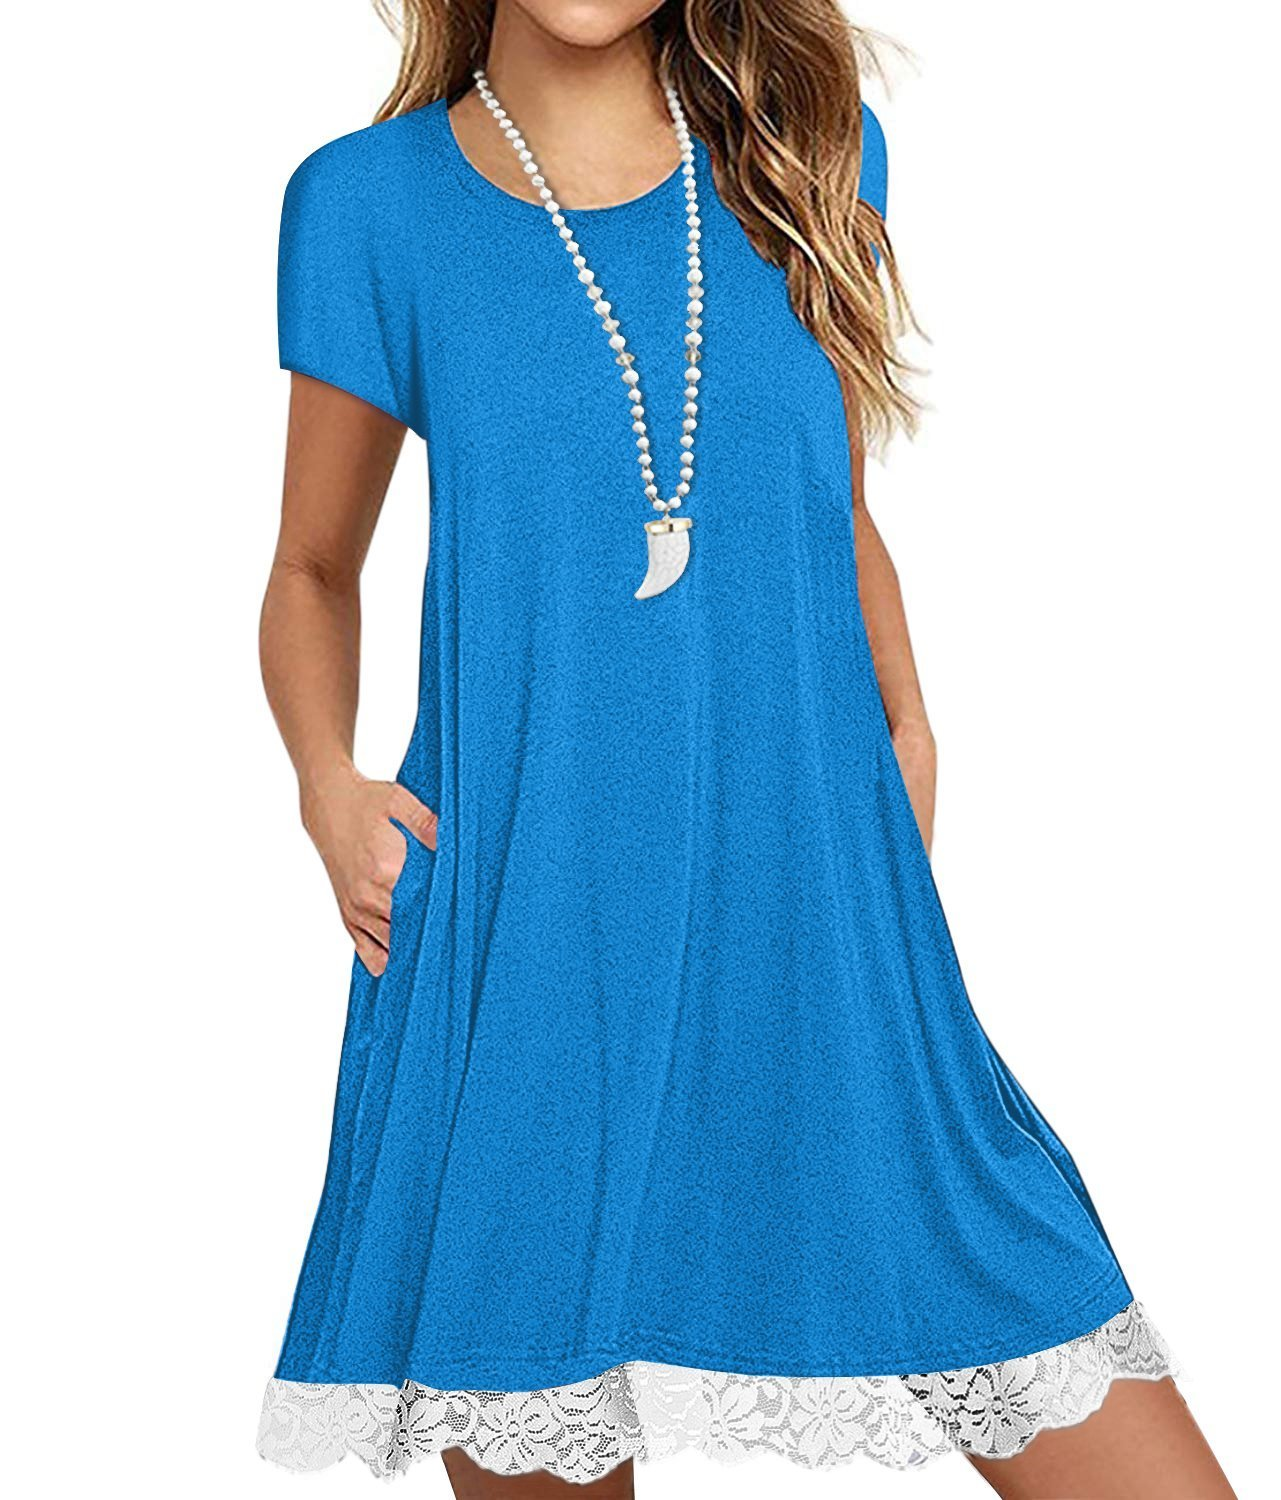 Eanklosco Womens Casual Short Sleeve Plain Pocket V Neck T Shirt Tunic Dress (SkyBlue-2, 2XL)